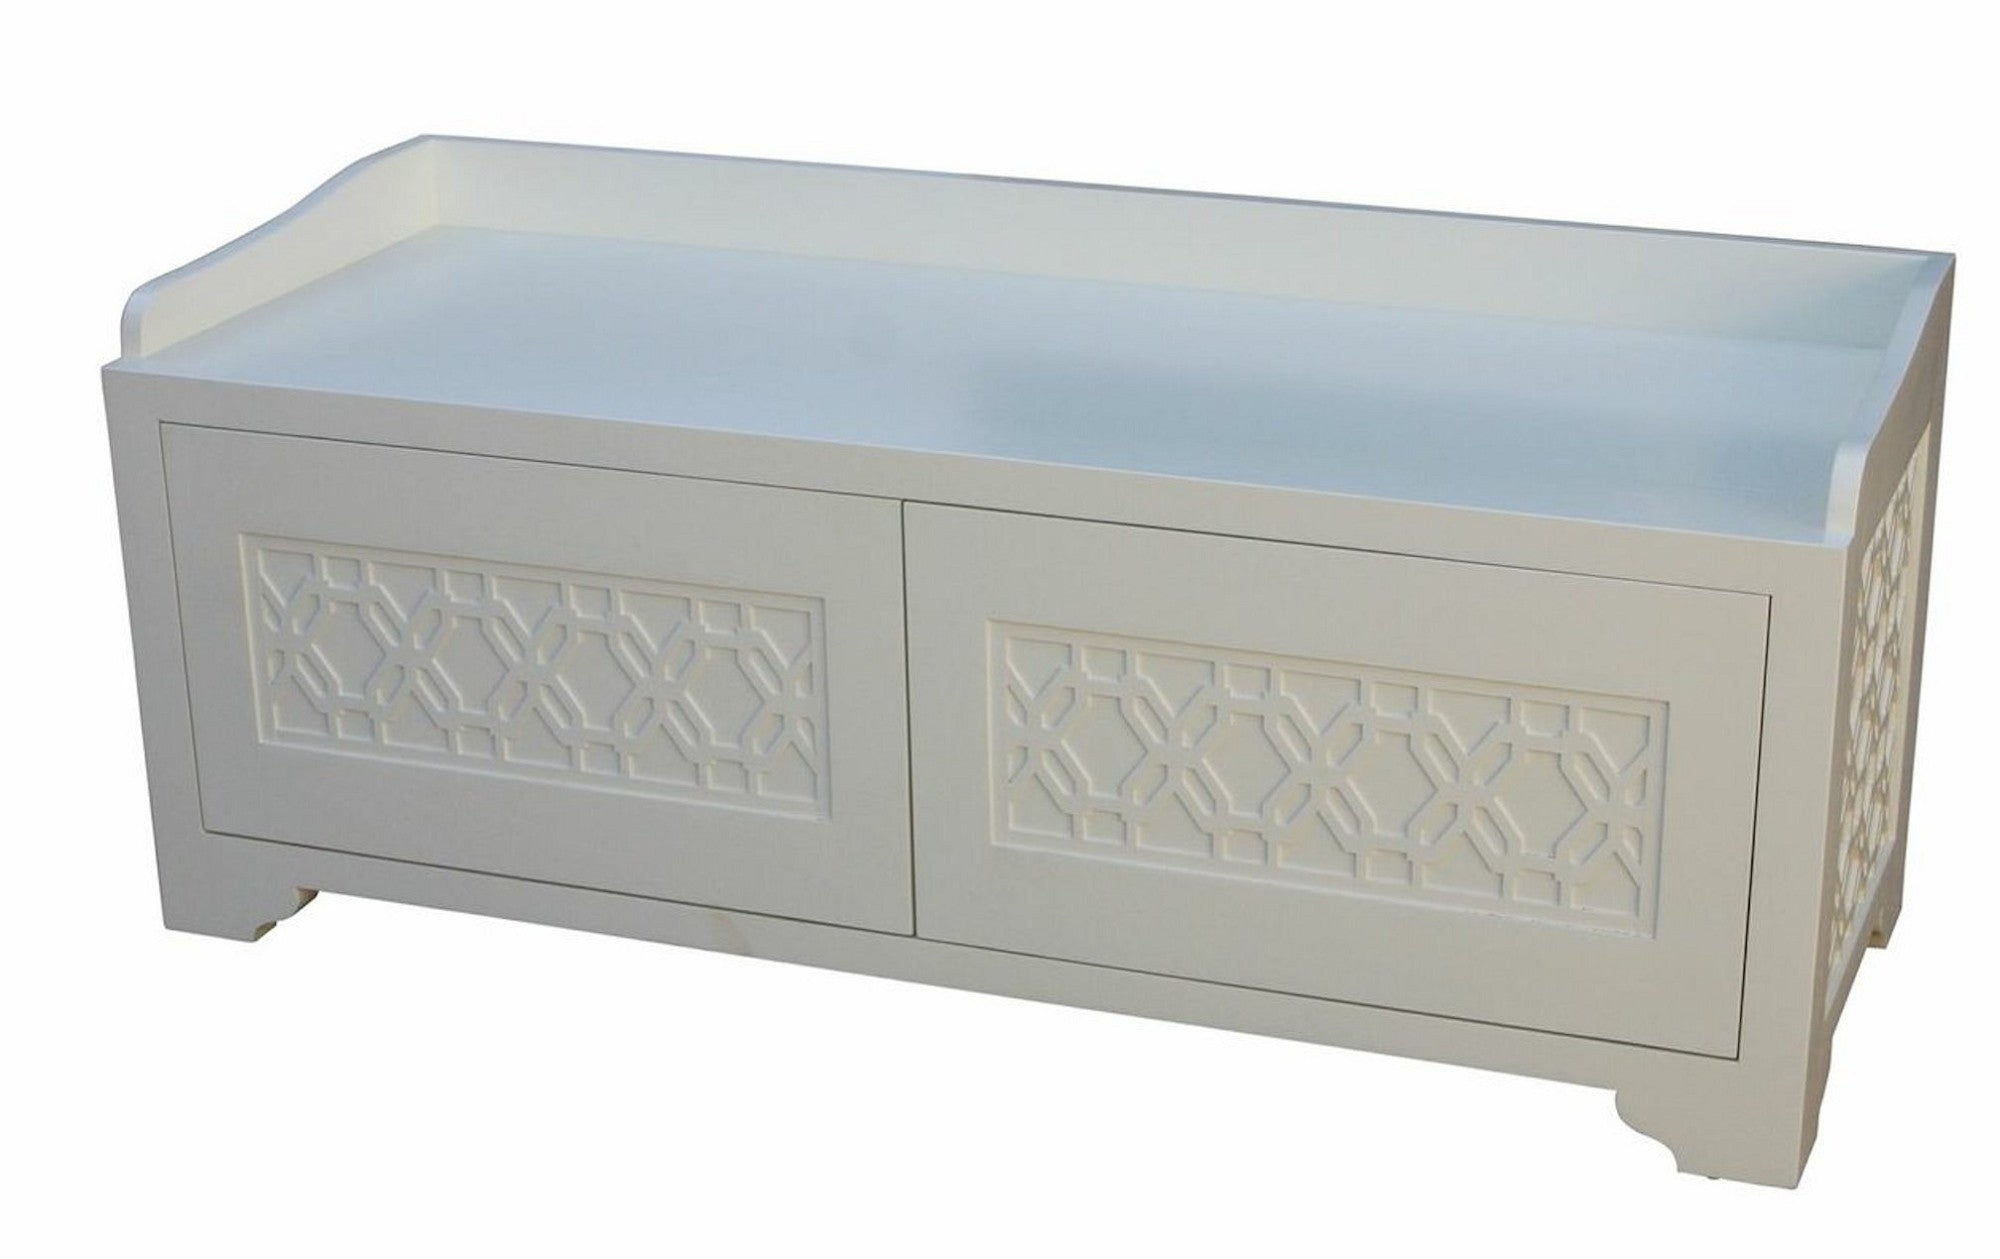 Remarkable Custom Bedroom Storage Bench With Geometric Lattice Tracery Bralicious Painted Fabric Chair Ideas Braliciousco